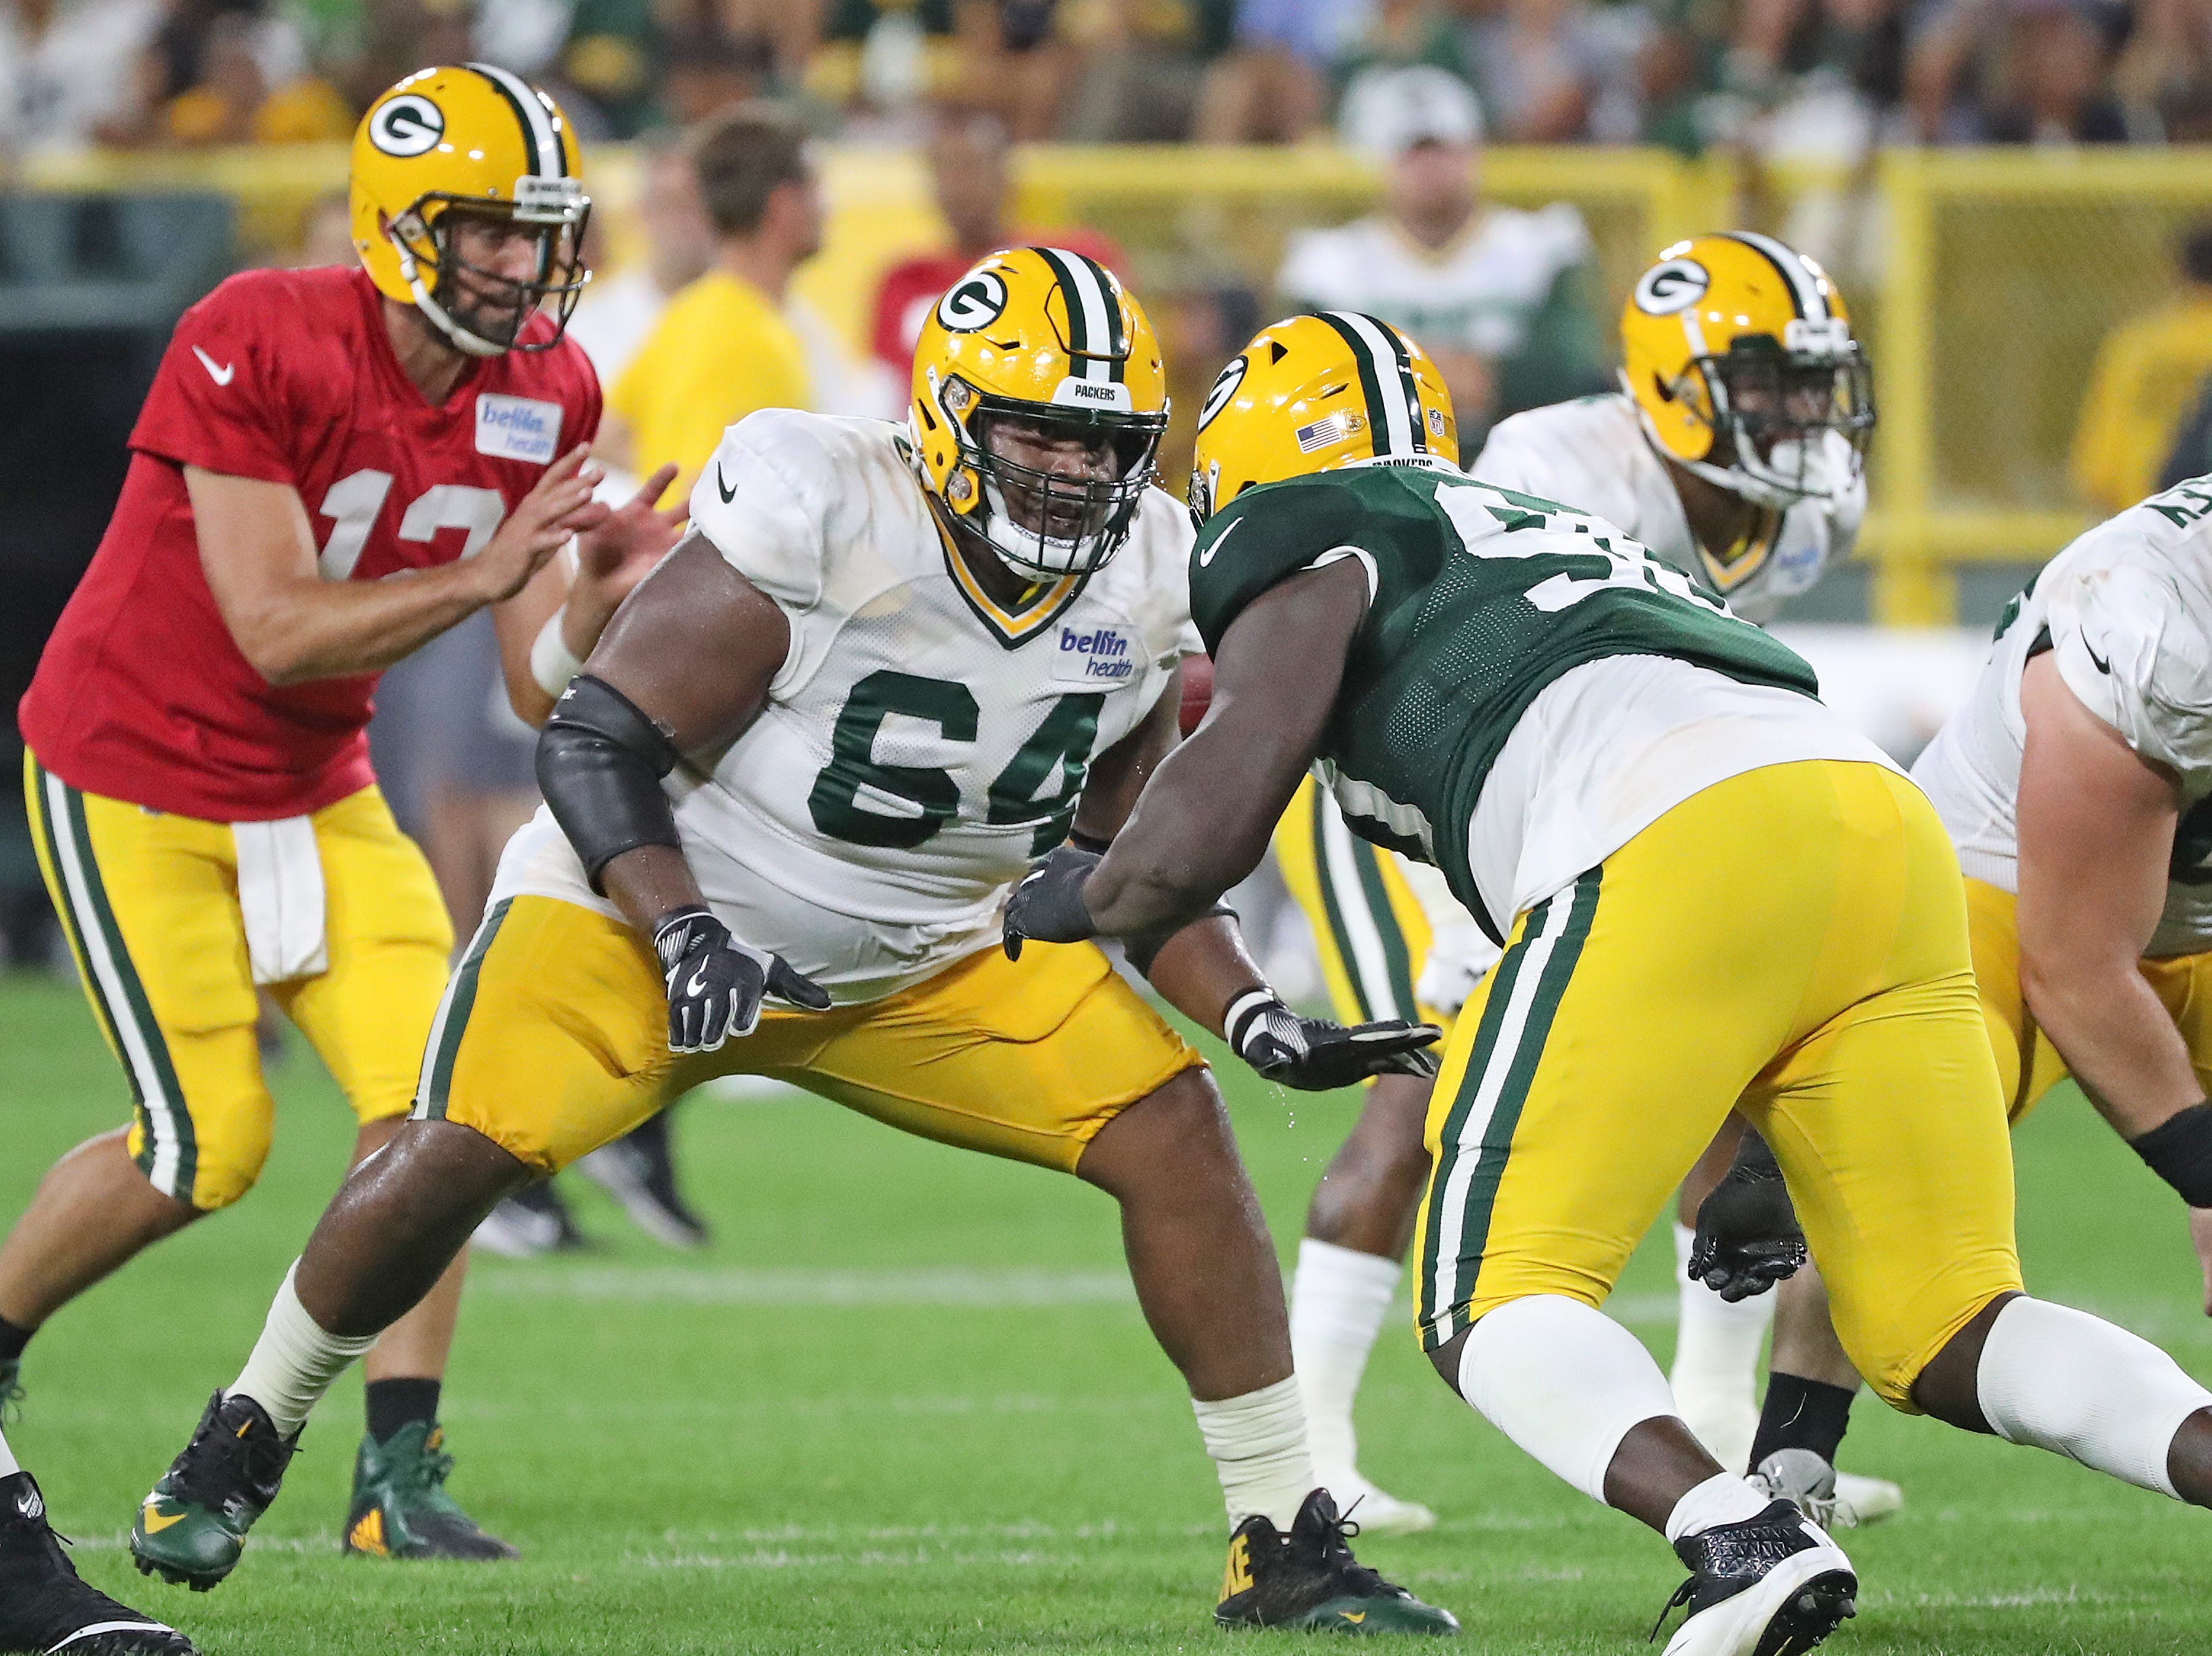 Green Bay Packers offensive guard Justin McCray (64) blocks defensive tackle Montravius Adams (90) during Green Bay Packers Family Night  Saturday, August 4, 2018 at Lambeau Field in Green Bay, Wis.,